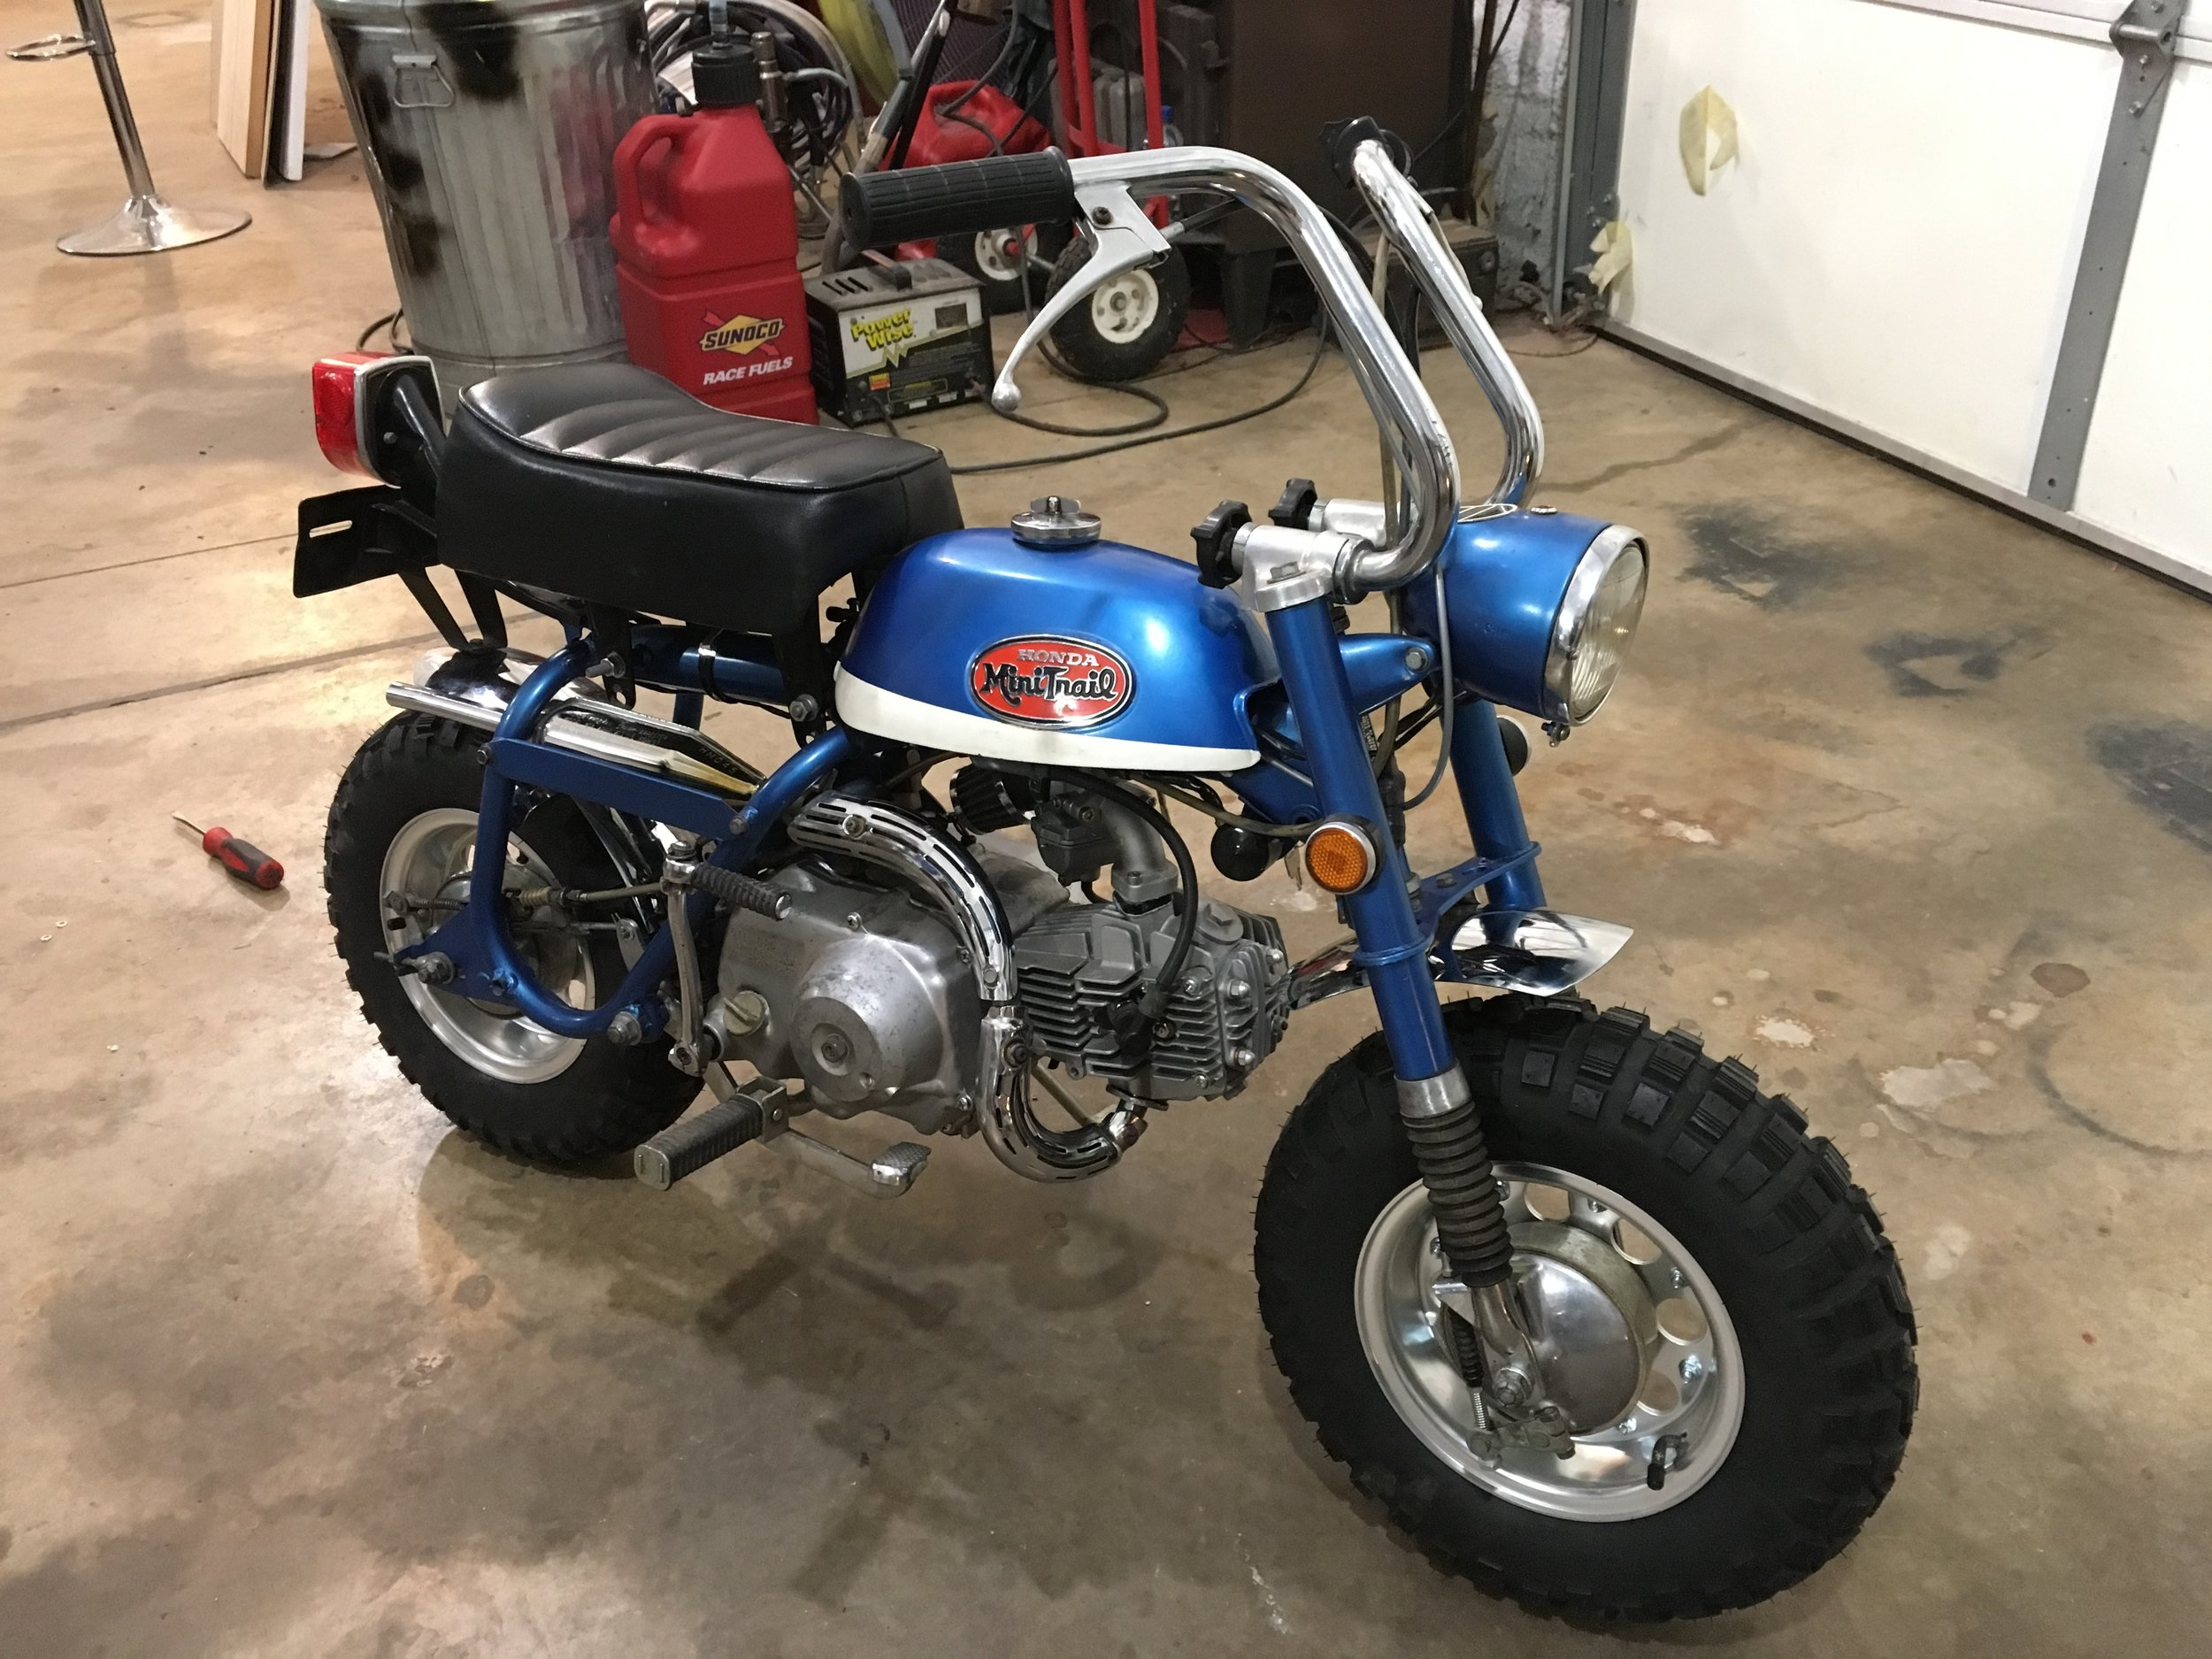 Got new fenders, tires, tubes, and alloy rims for Blaine's 1971 Honda Z50. These tires are a little taller than the originals. We got them on in his shop up in Oklahoma over the holiday. This little guy is ready to rip!